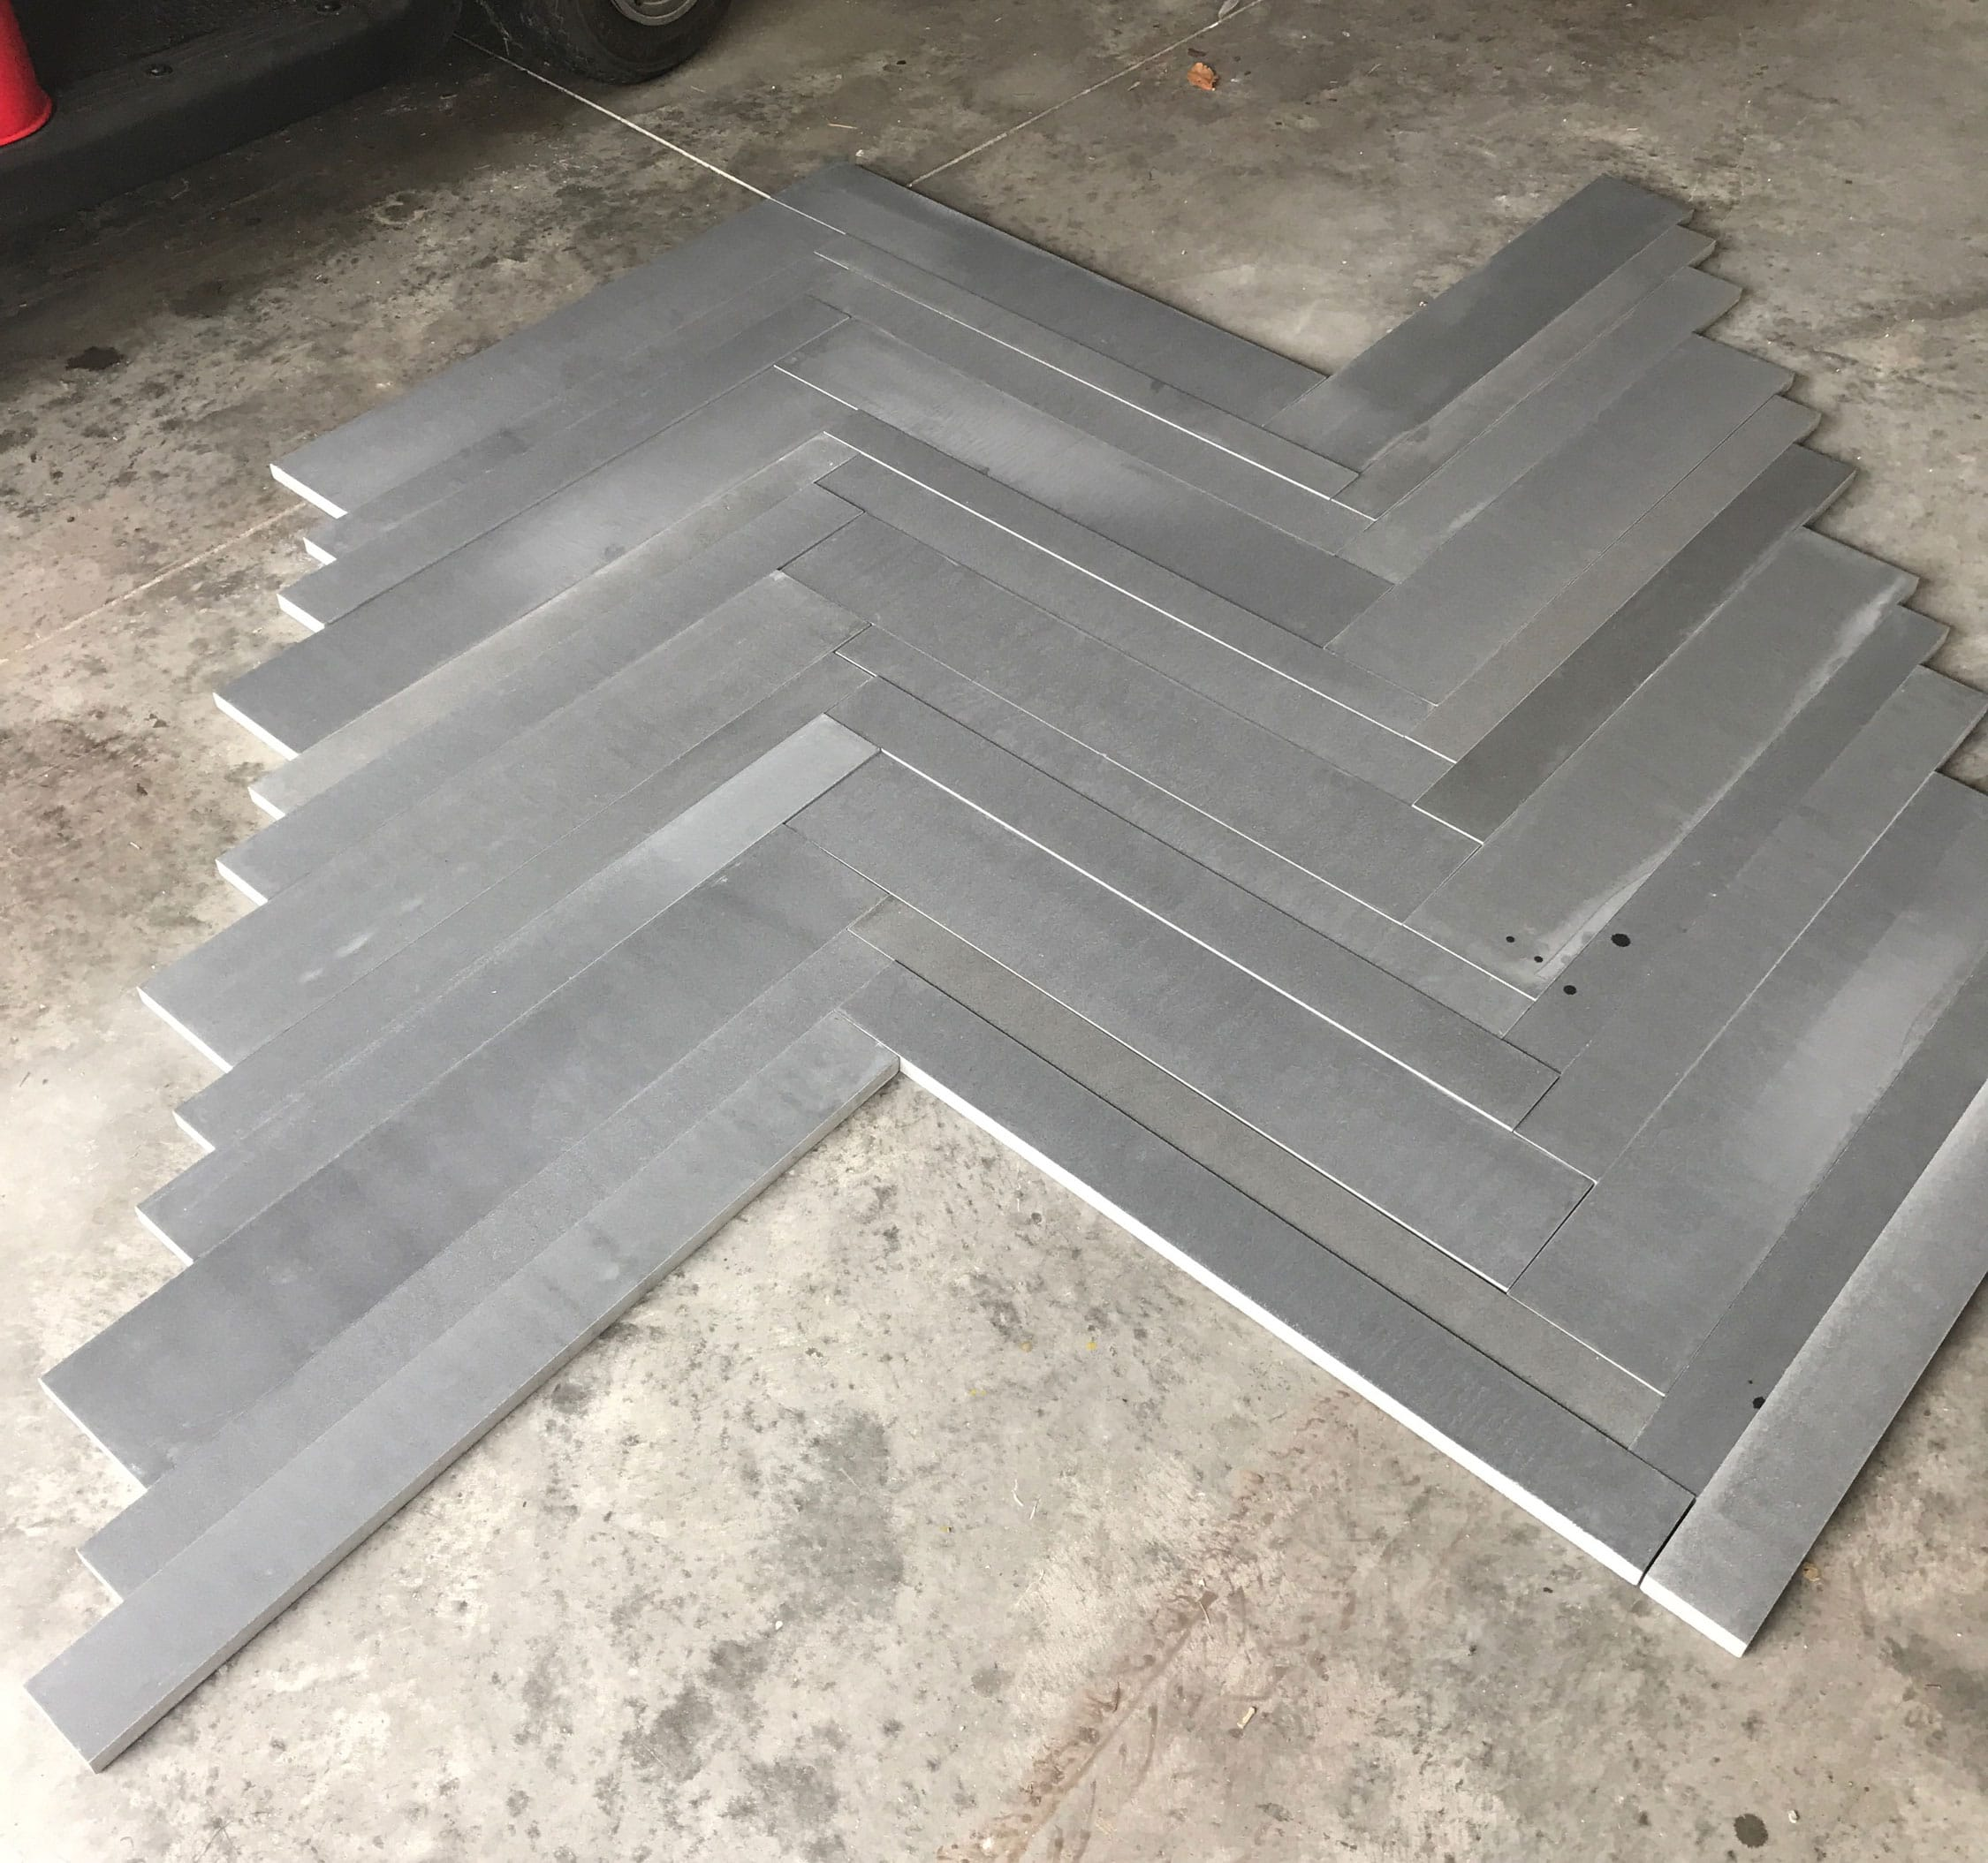 Norstone Planc Large Format Tile shown laid out in a Herringbone pattern